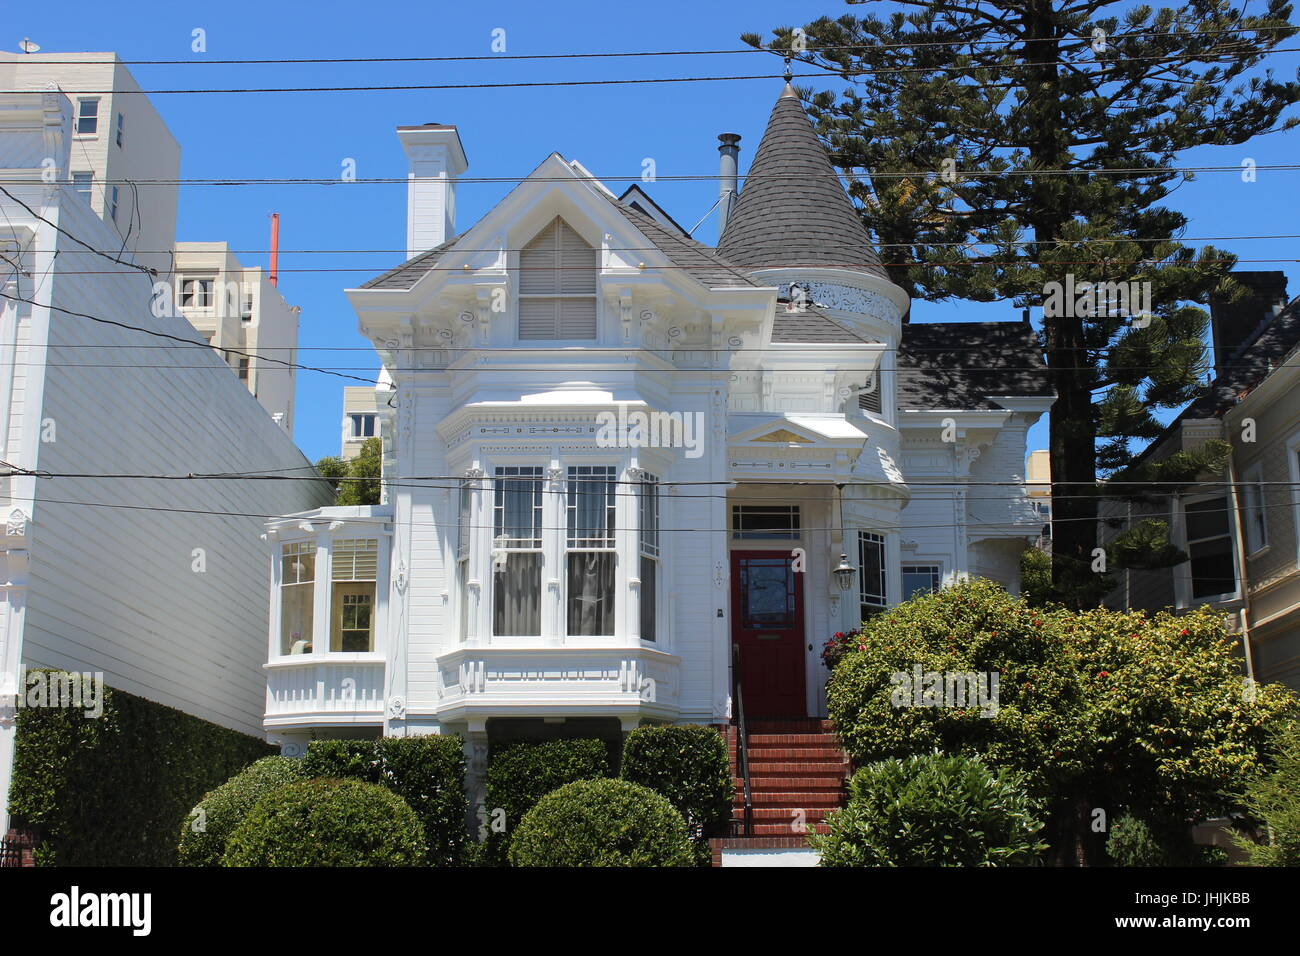 Eastlake-style House built 1886, Pacific Heights, San Francisco, California - Stock Image